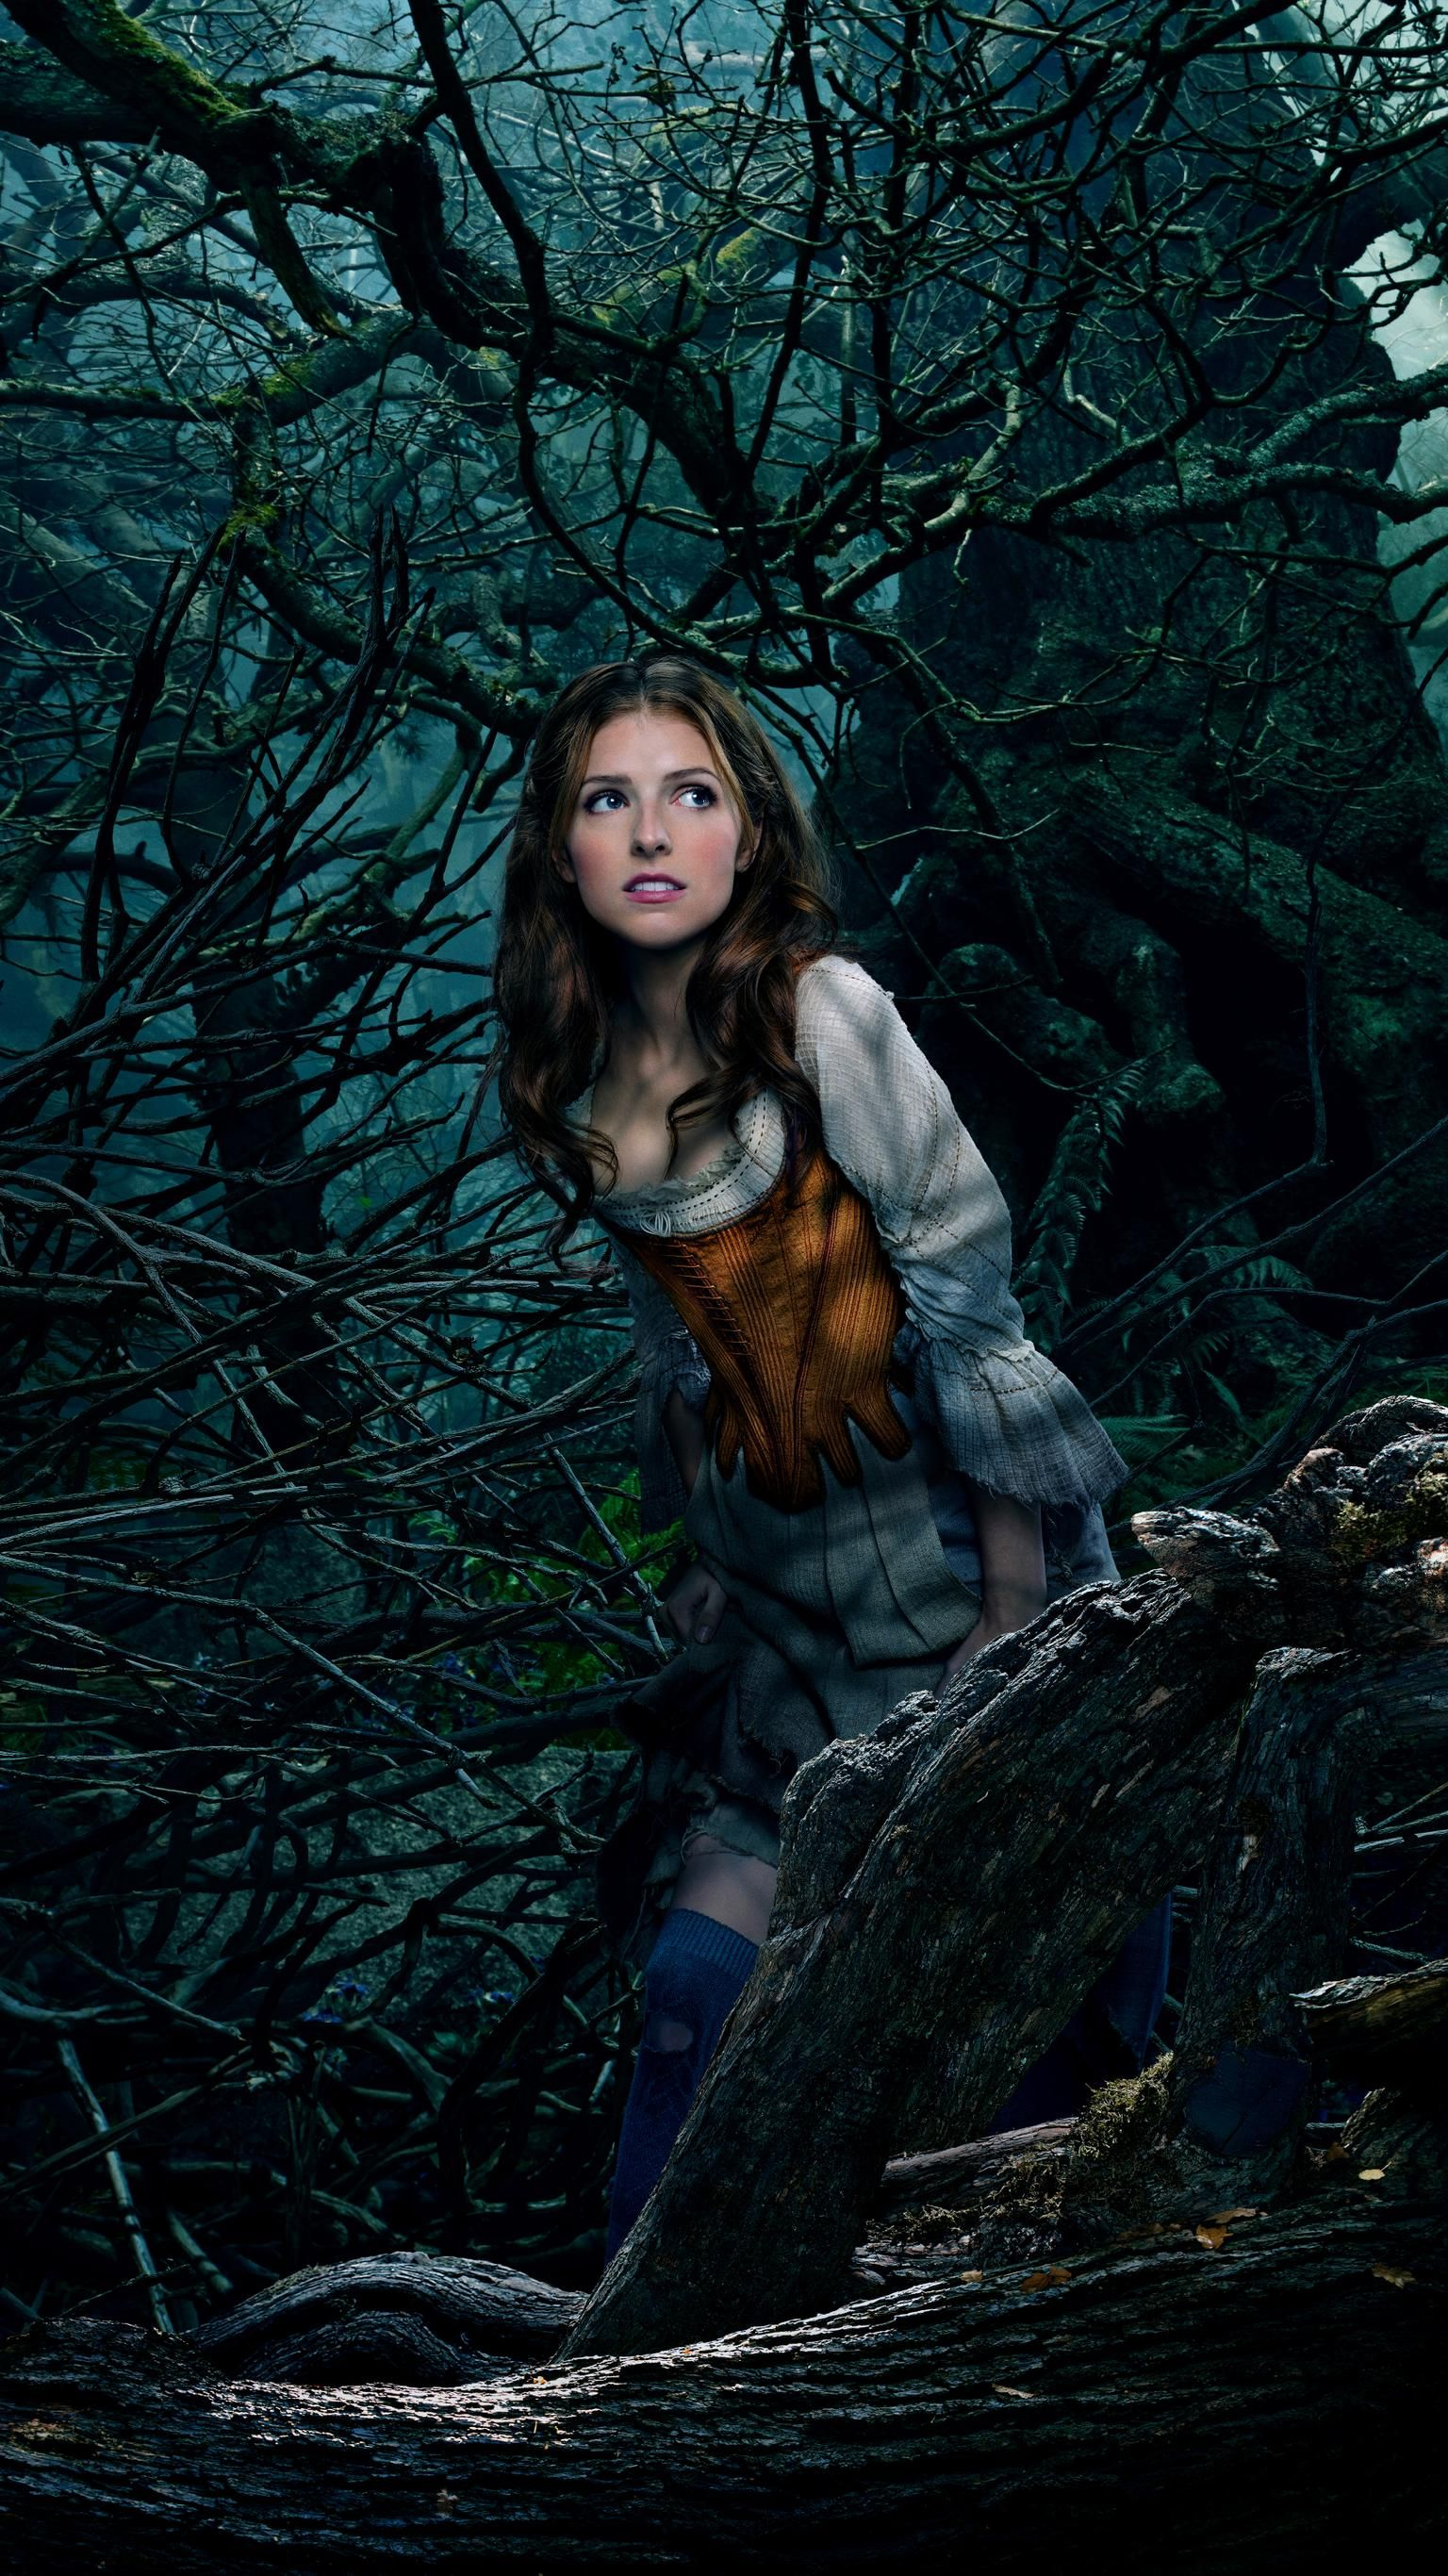 Into The Woods 2014 Phone Wallpaper Moviemania Into The Woods Movie Anna Kendrick Disney Live Action Movies